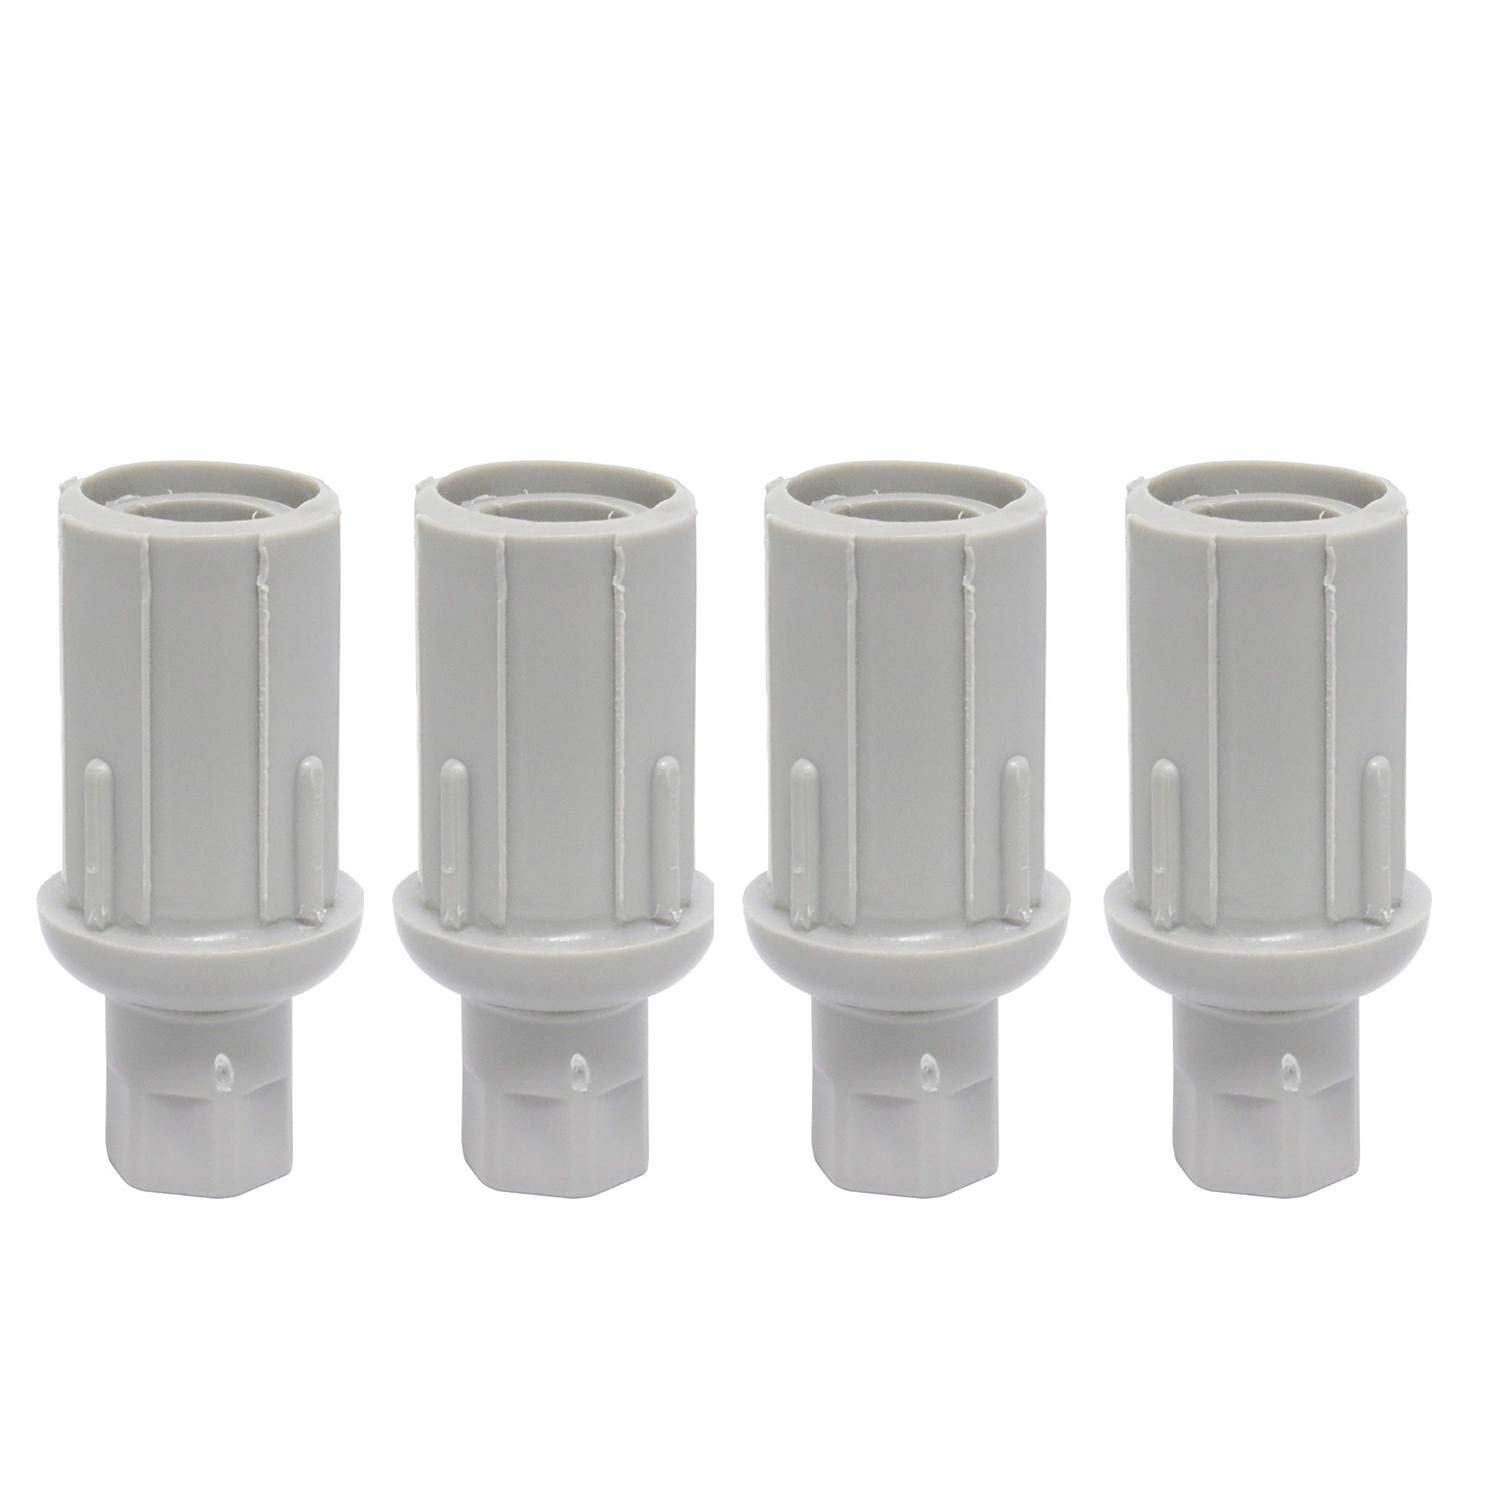 Leyso Set of 4 Plastic Bullet Foot 1'' Adjustable for Stainless Steel 1-⅝'' O.D. Tubing (Plastic) by Leyso